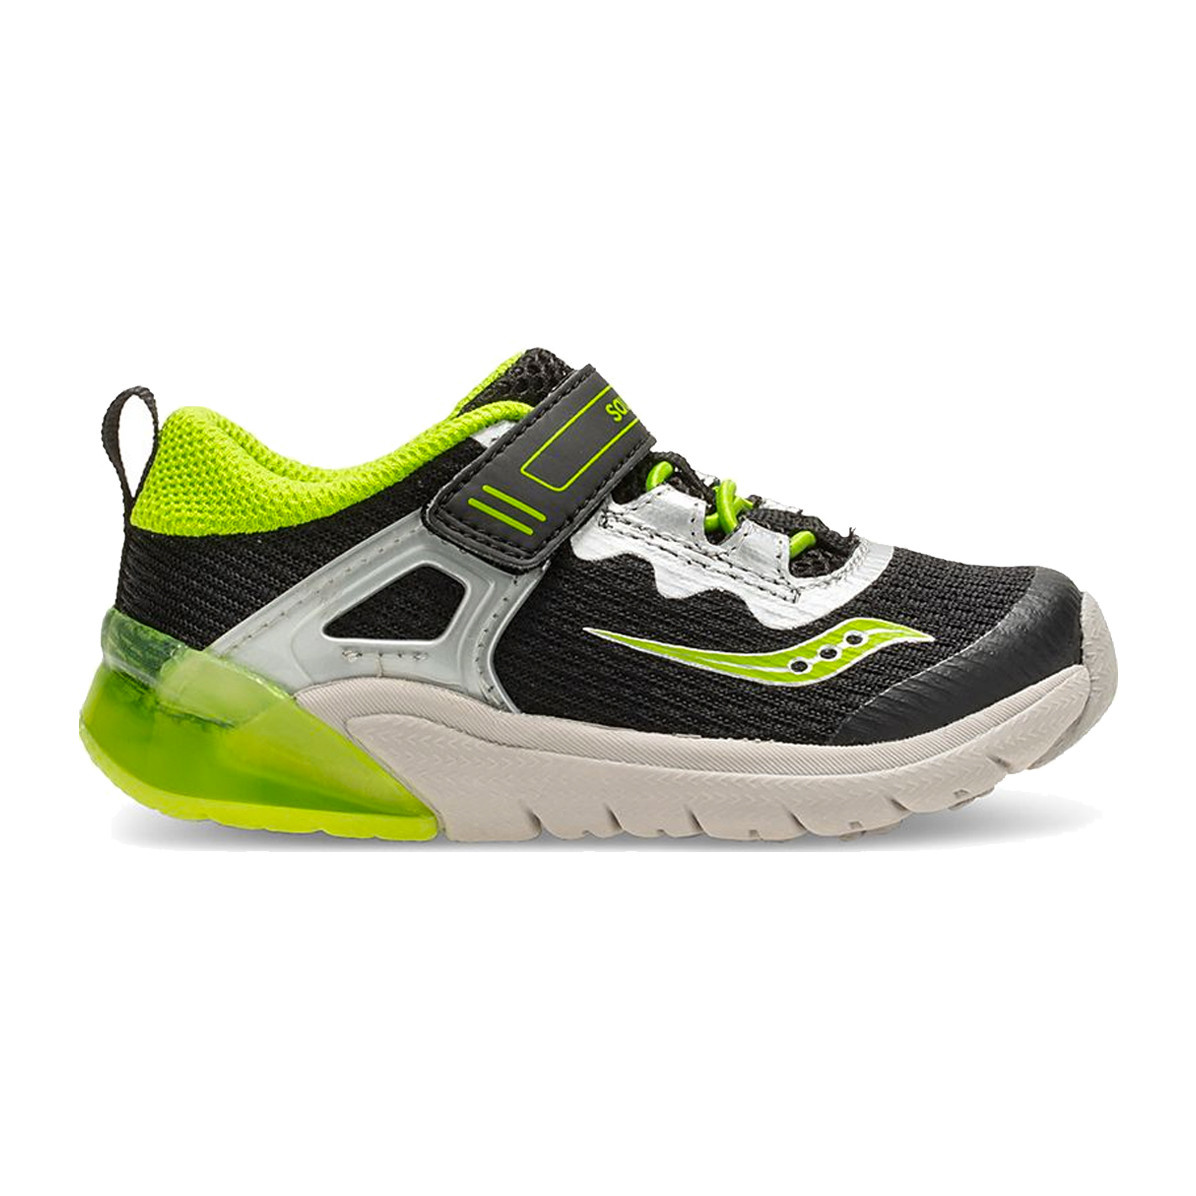 Saucony Saucony Youth Flash Glow Black/Green